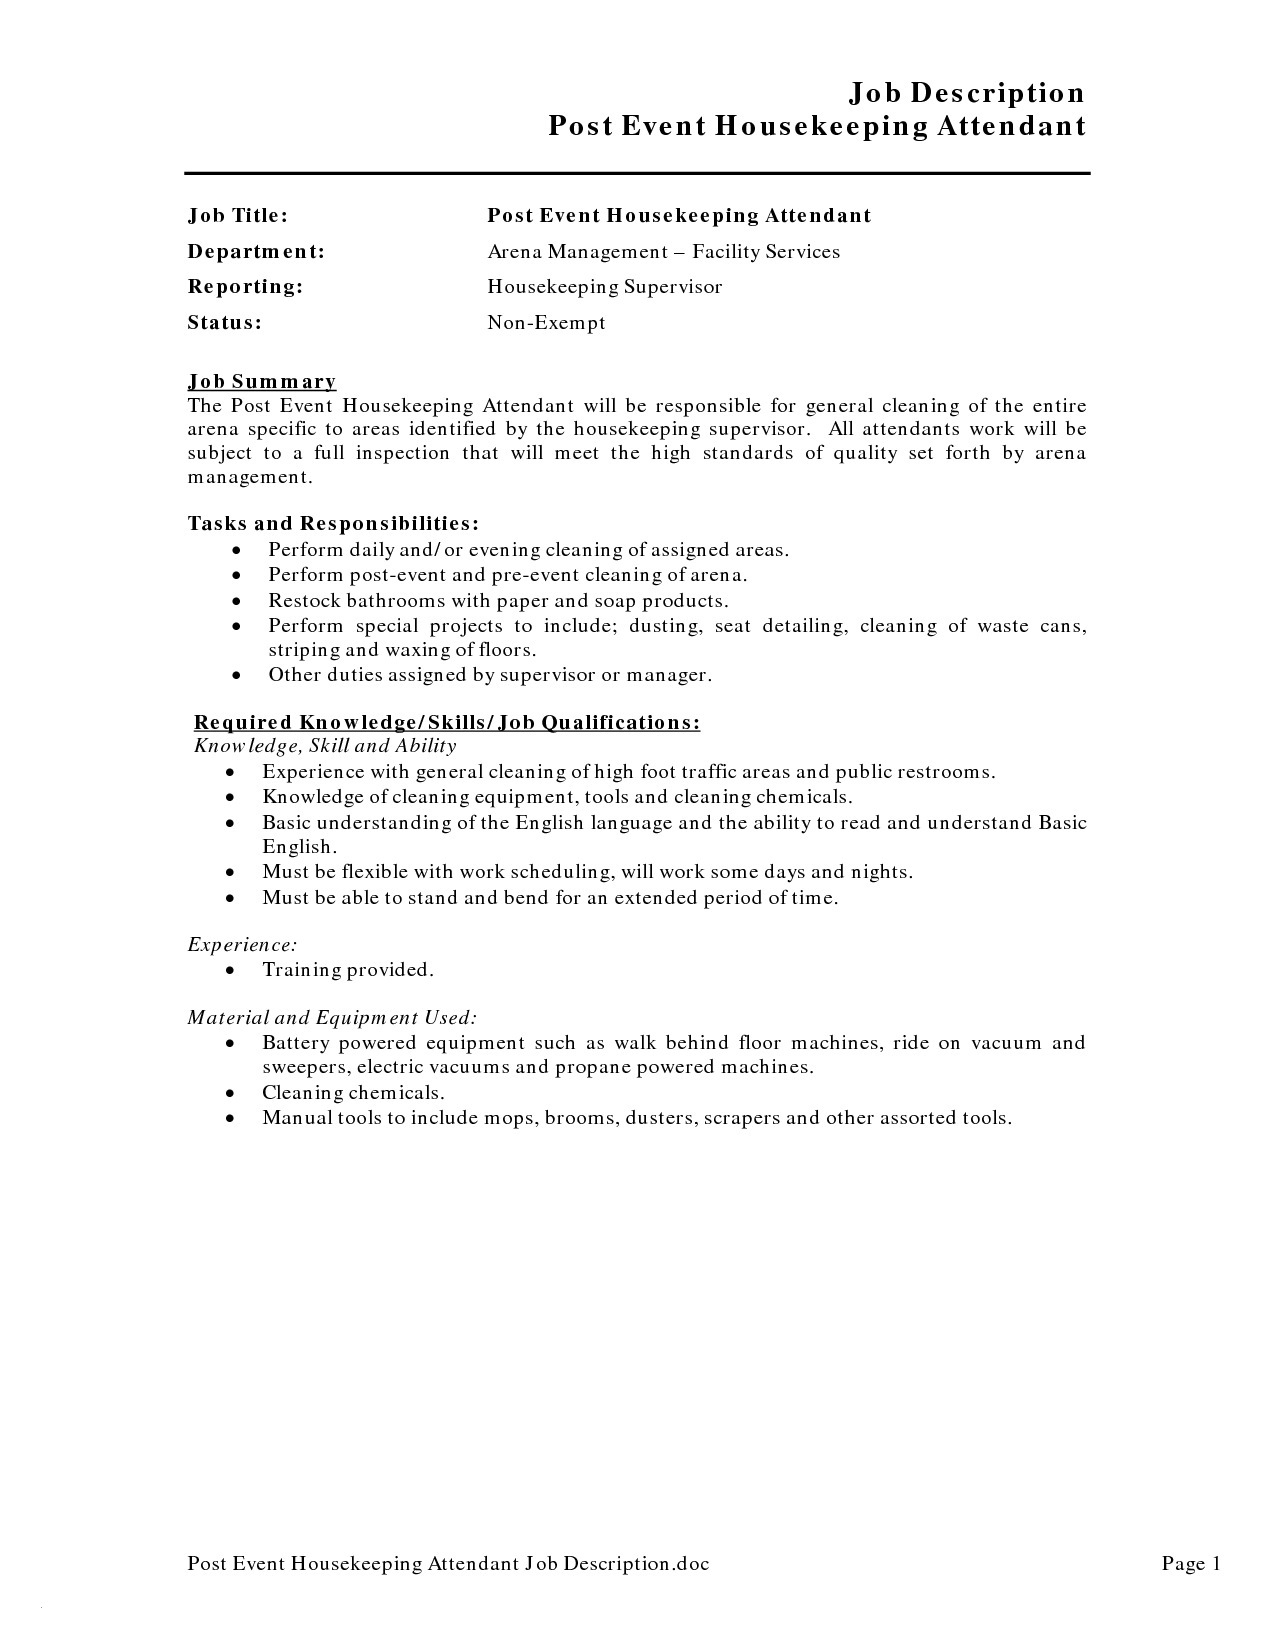 Hotel Housekeeping Resume - Hotel Housekeeping Job Description for Resume Best Hotel